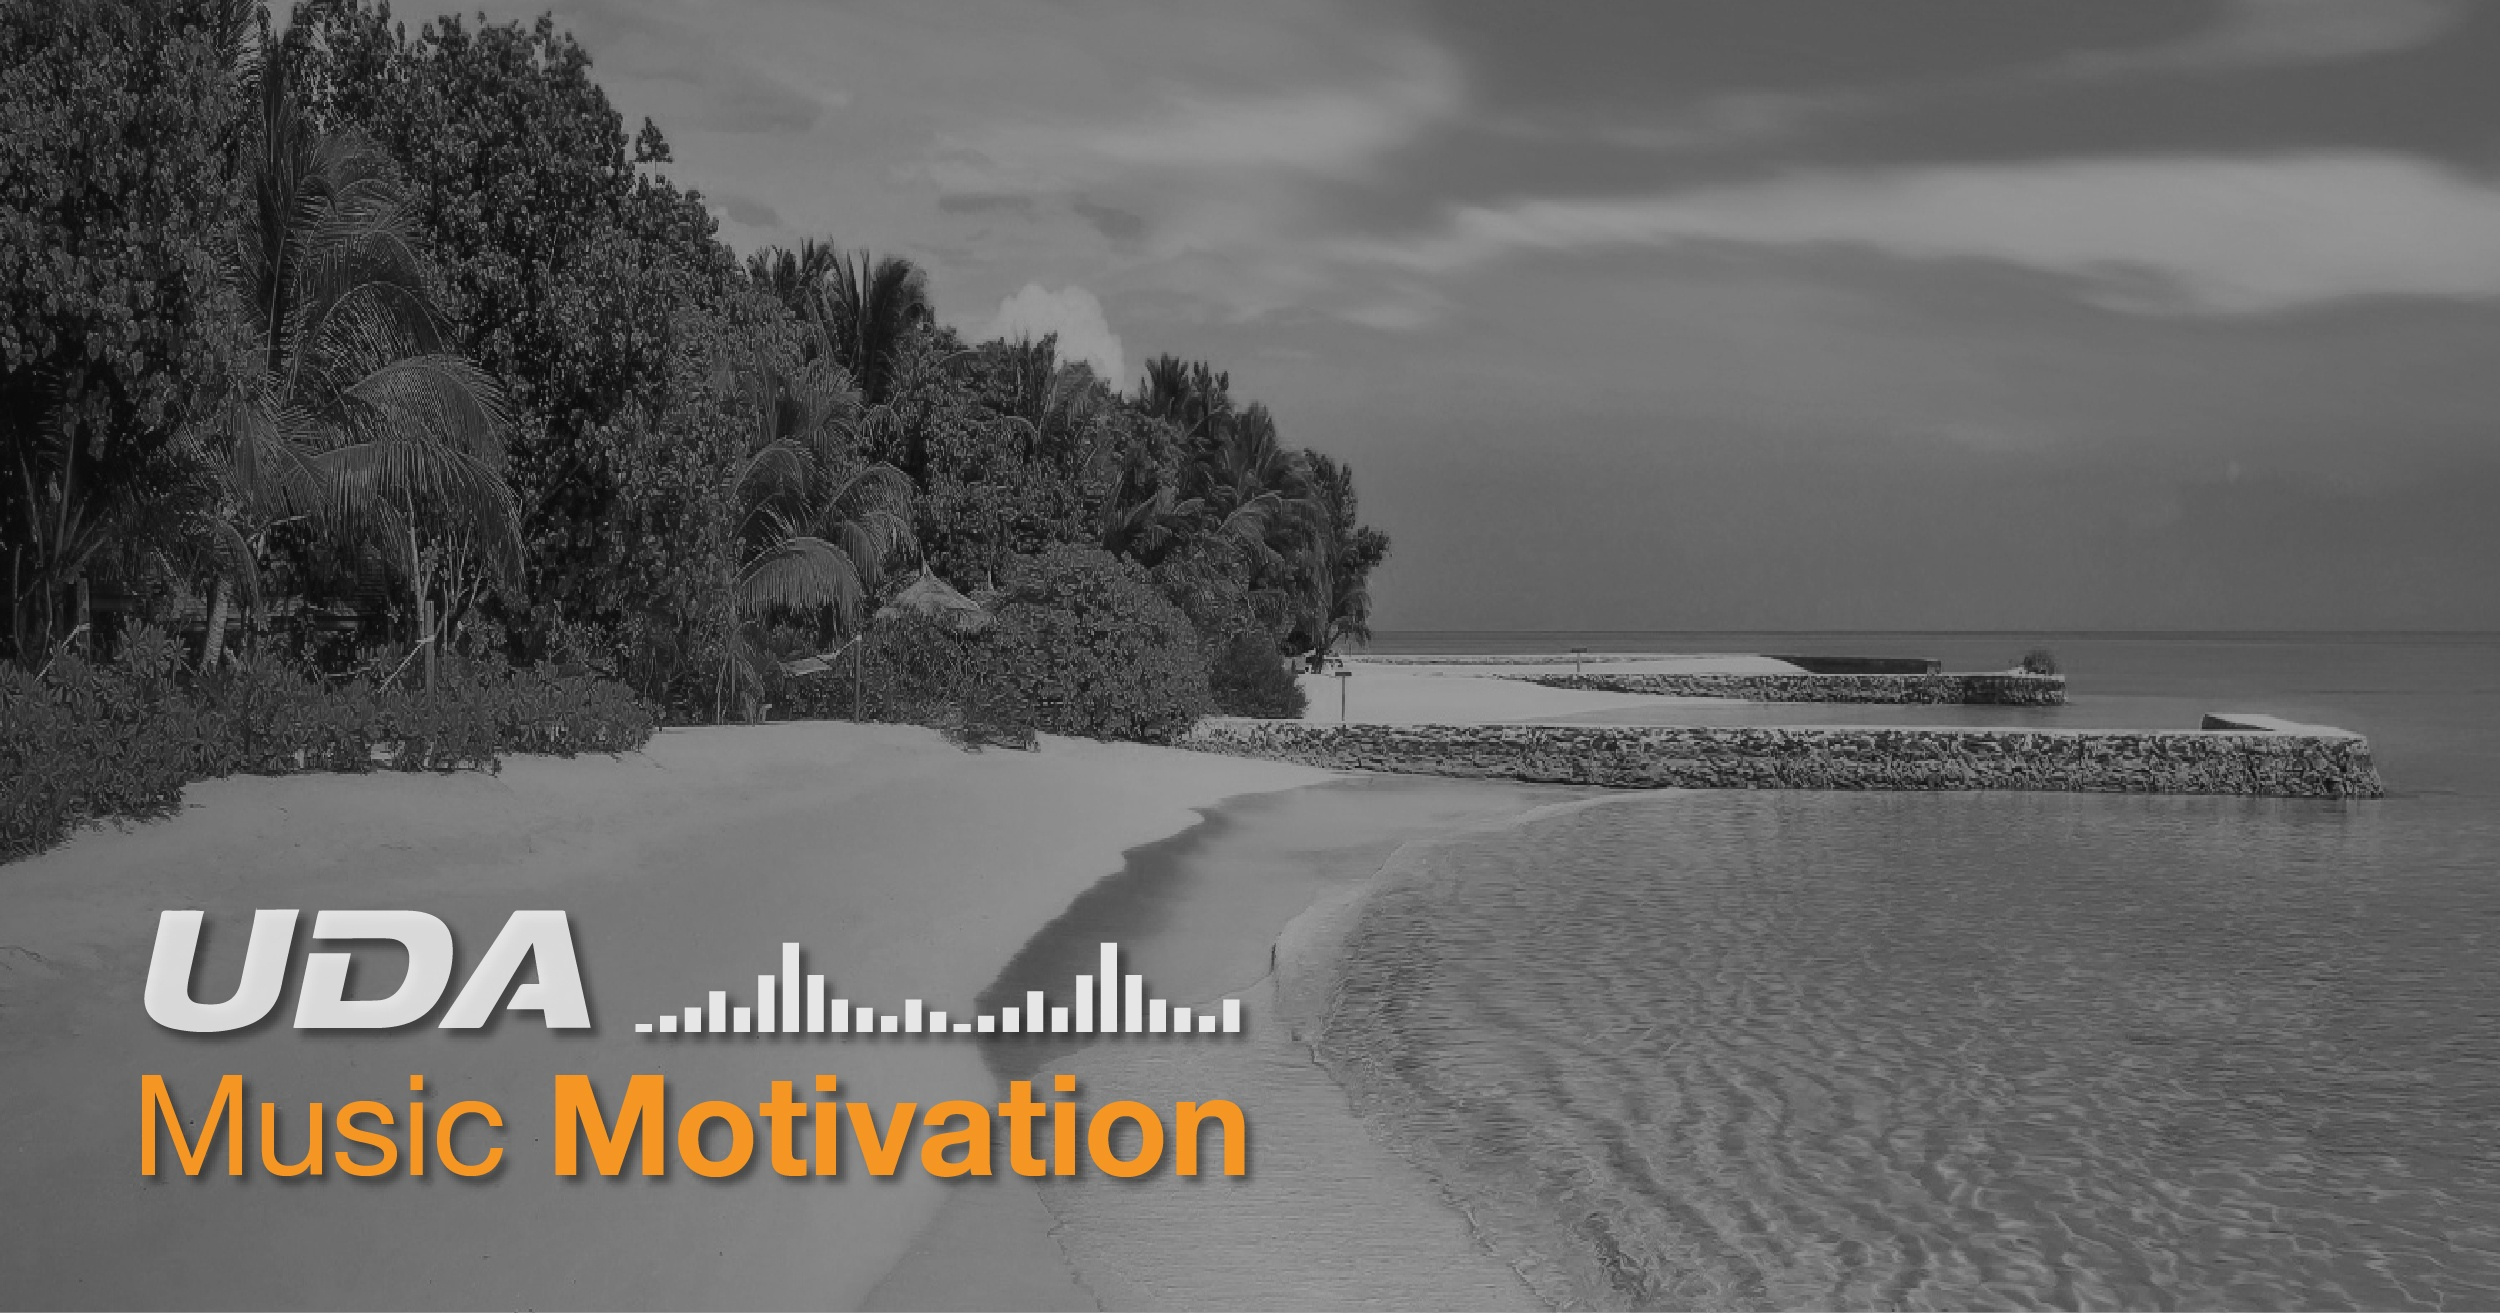 Music Motivation: Vacation Vibes